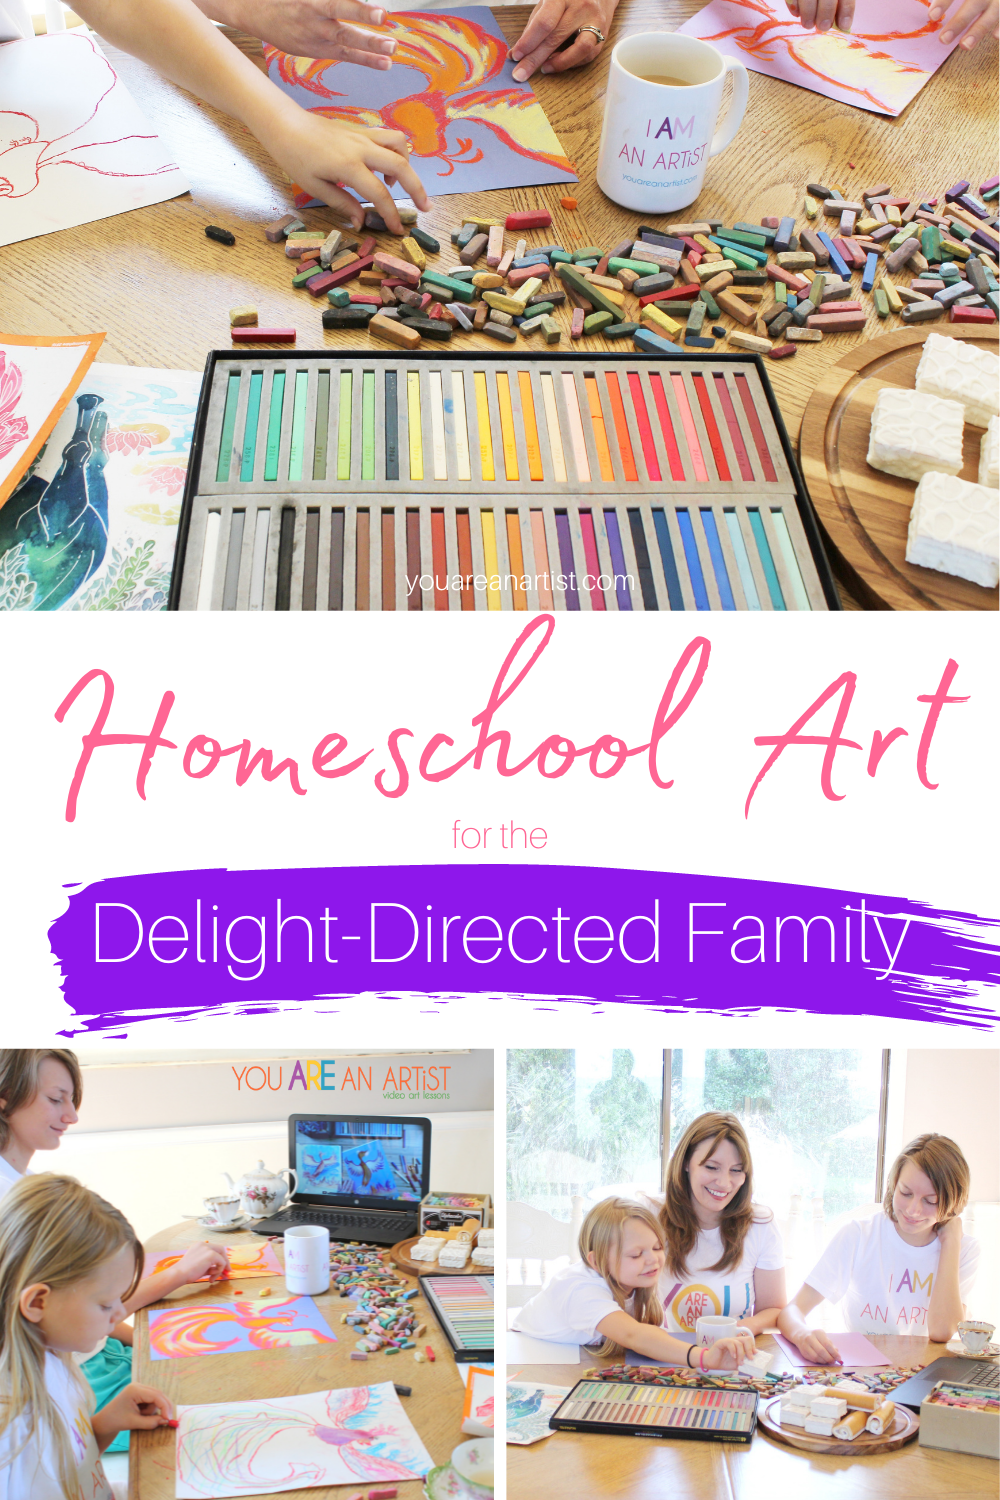 Homeschool Art for the Delight-Directed Family: Experience how a delight-directed family uses the power of art to enhance their child-led learning adventure! You don't have to be artistic or worry about a vast supply list. A simple starter set of chalk pastels, a pack of construction paper, and the You ARE An Artist chalk pastel video art lessons are all you need to get started. #YouAREAnArtist #chalkpastels #homeschoolart #delightdirected #delightdirectedhomeschoolart #delightdirectedfamily #childlededucation #unschooling #strewing #delight-directedhomeschooling